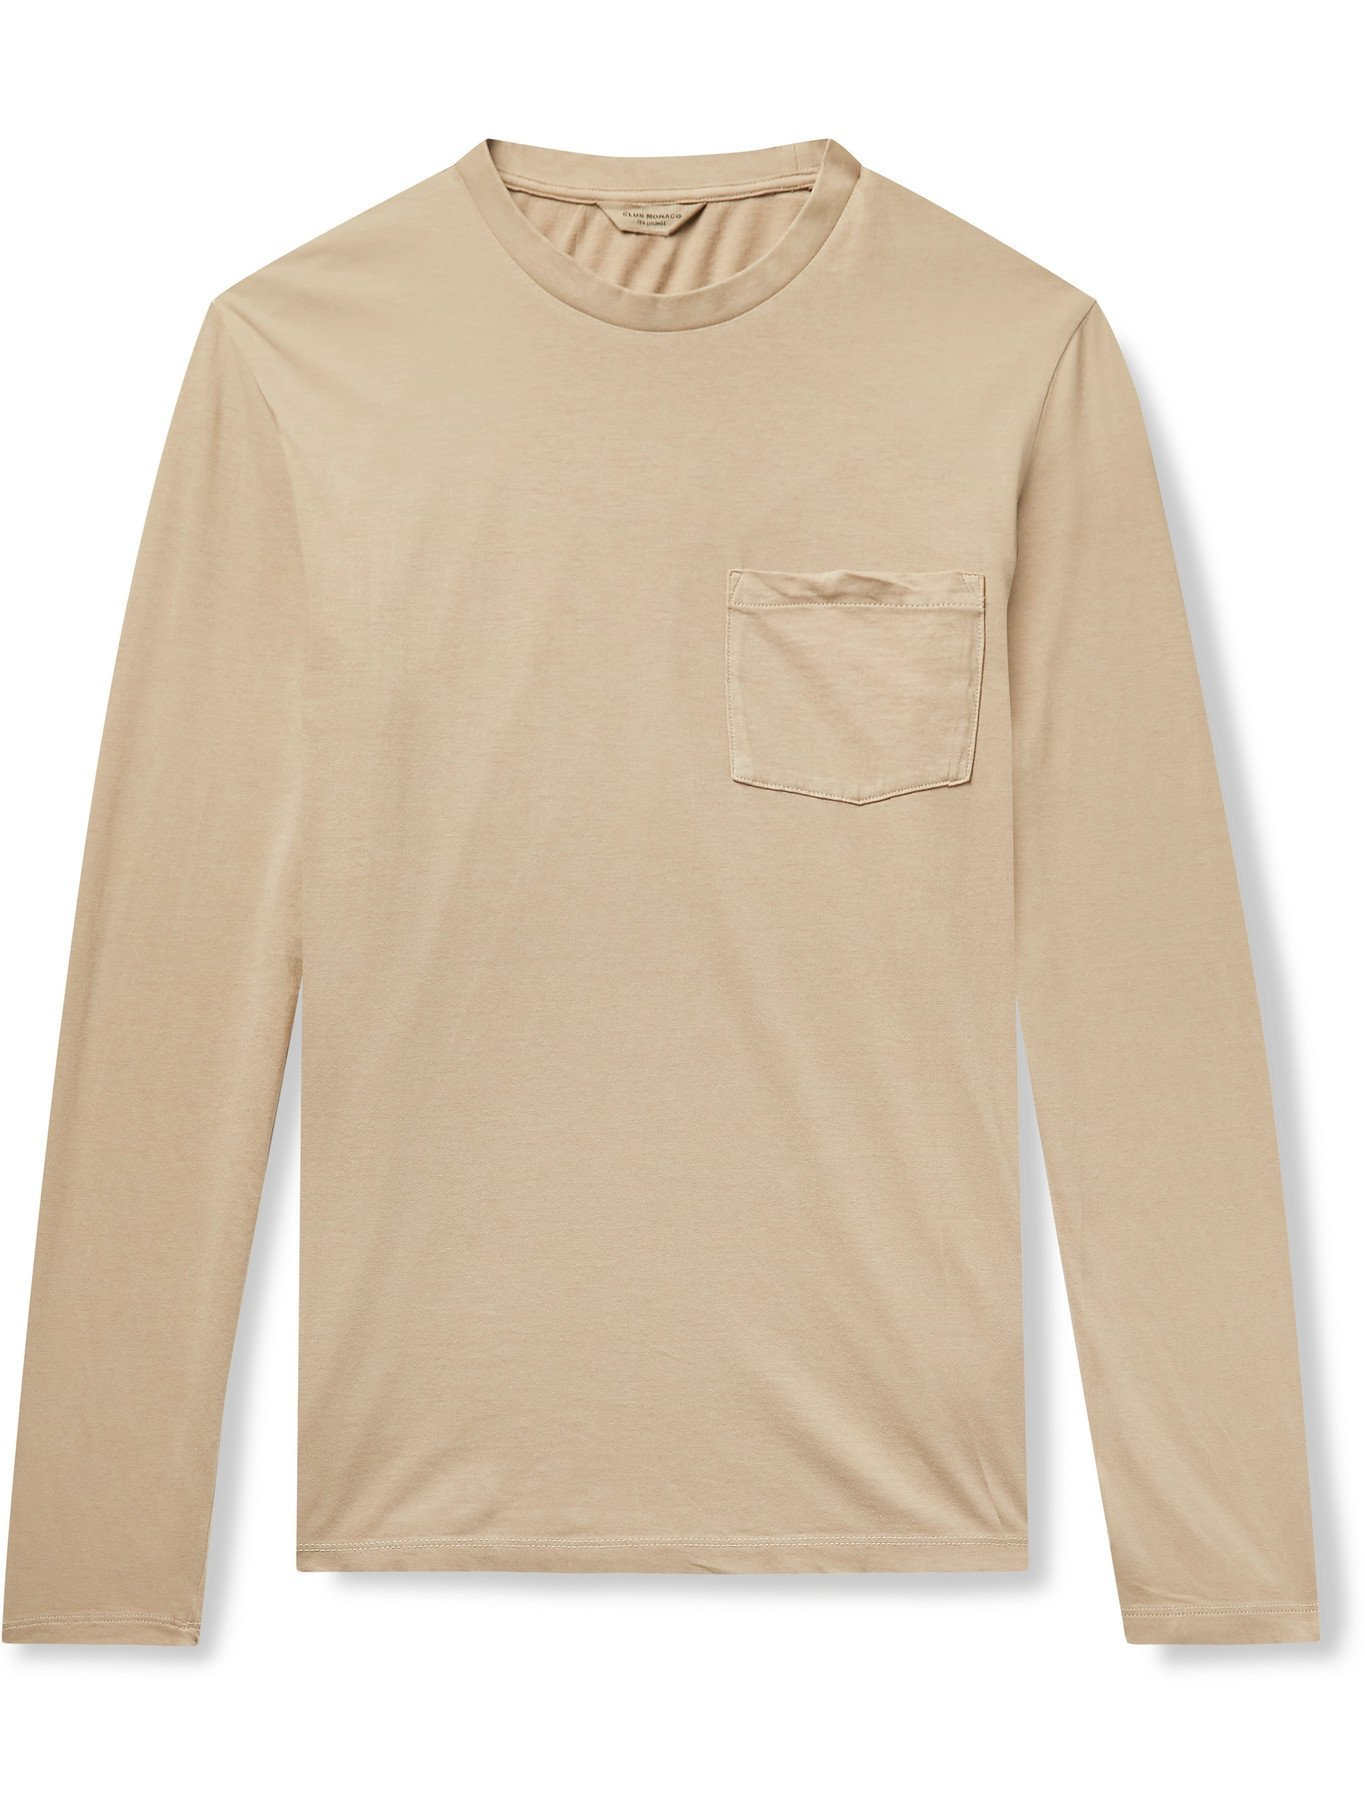 Photo: CLUB MONACO - Williams Cotton-Jersey T-Shirt - Neutrals - XS